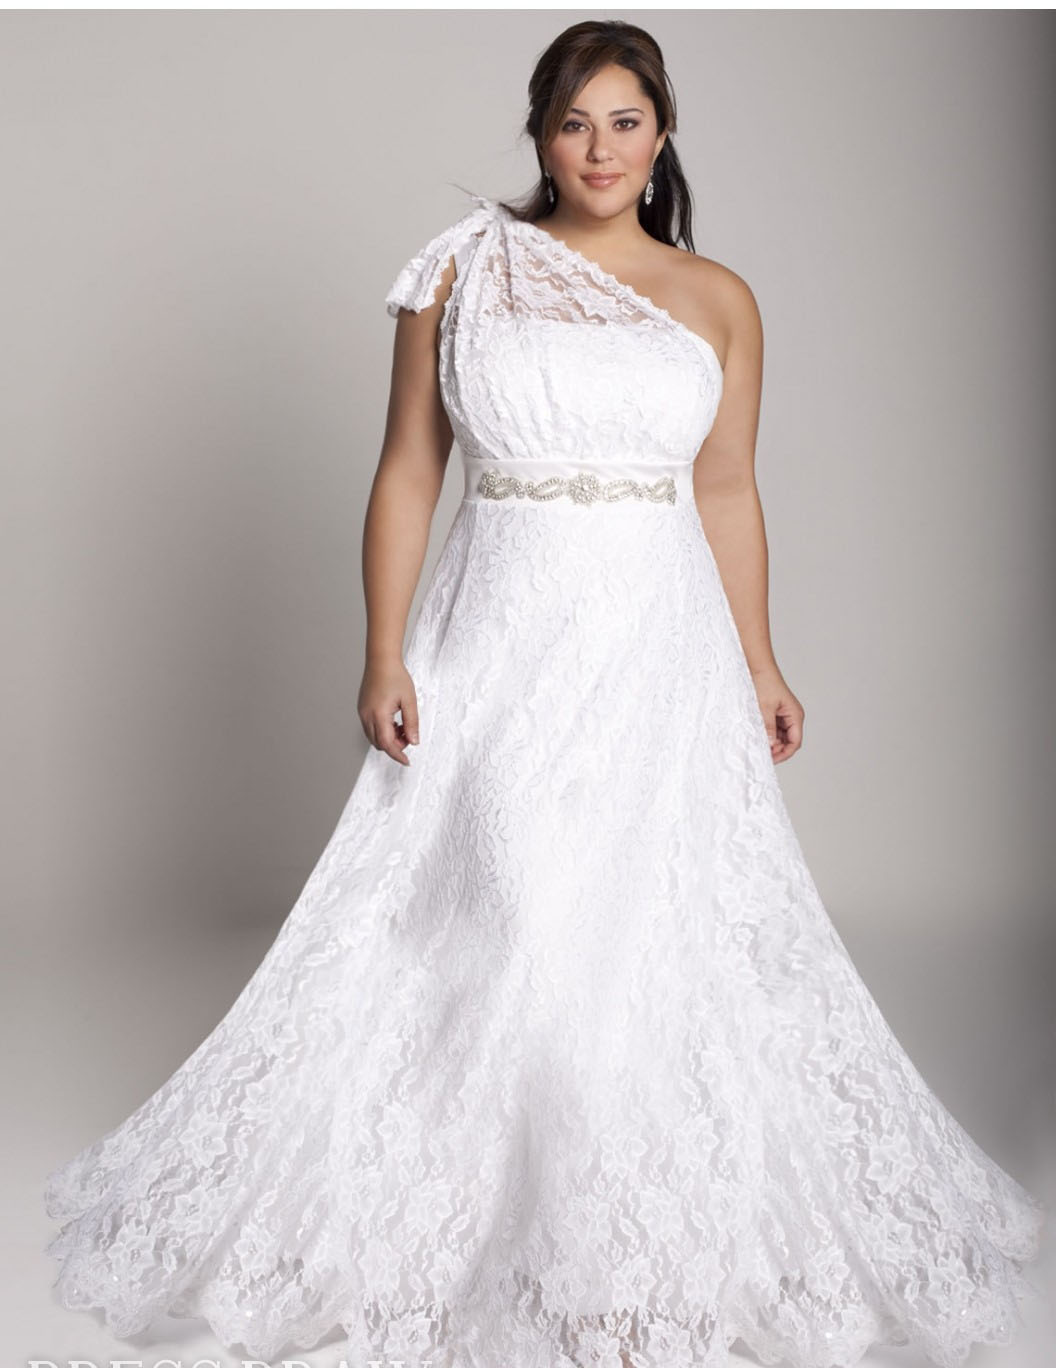 Affordable plus size vintage wedding dresses cheap plus size wedding dresses discount plus size wedding dresses cheap plus size wedding ombrellifo Image collections